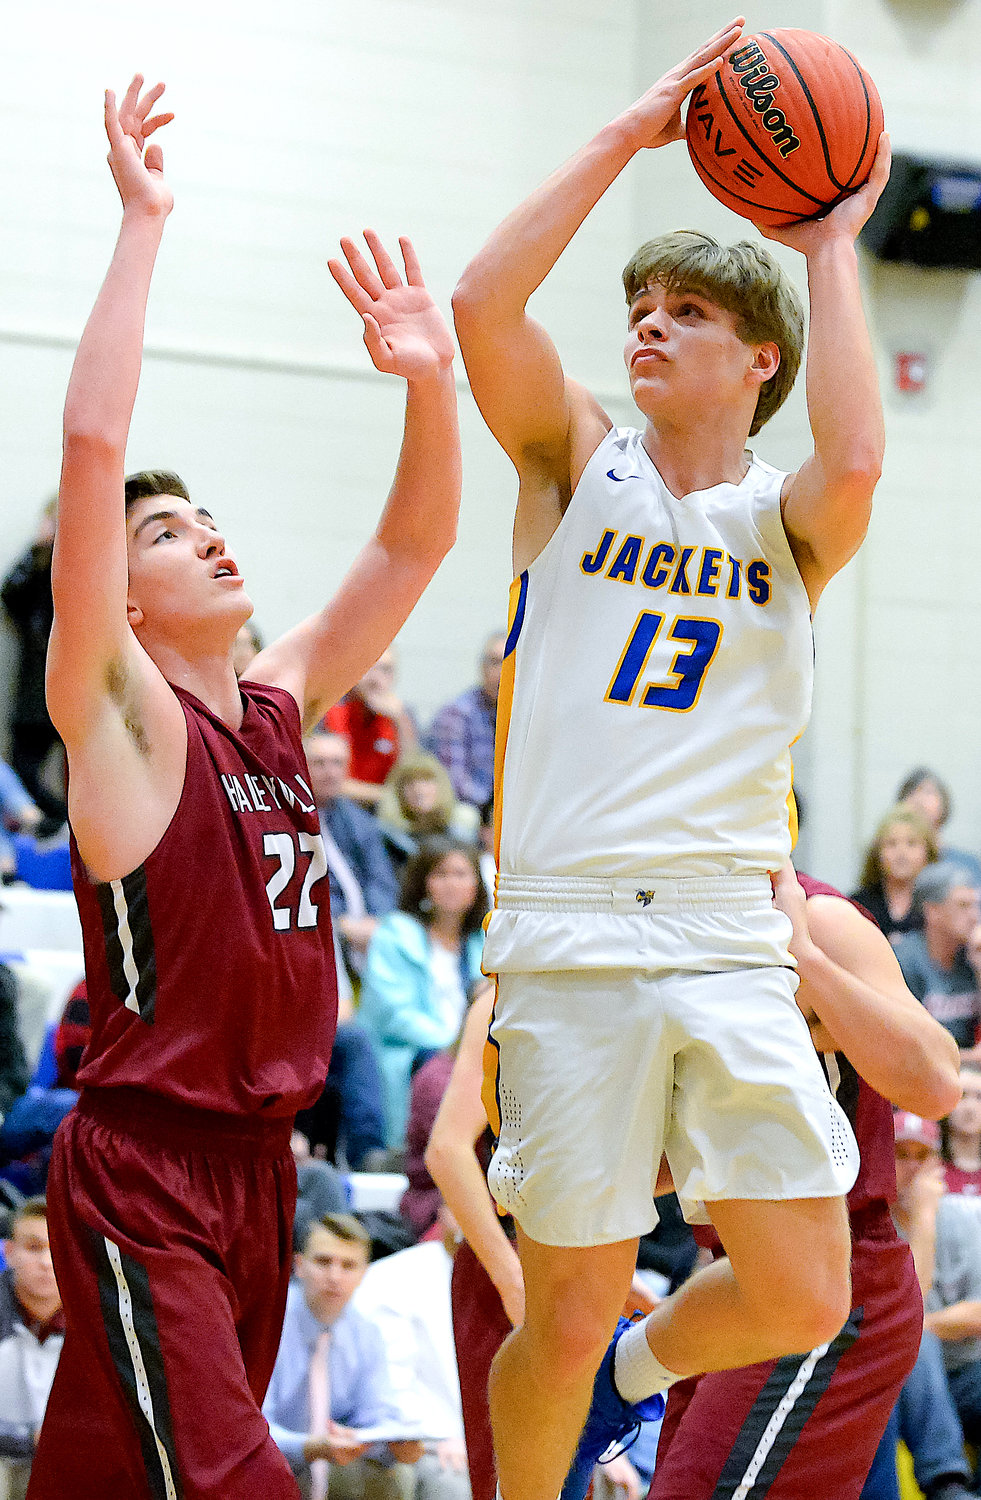 Curry's Jakob Hicks (13) shoots as Haleyville's JT Gilbert (22) defends during their game Thursday night. Haleyville won 49-42 in OT.